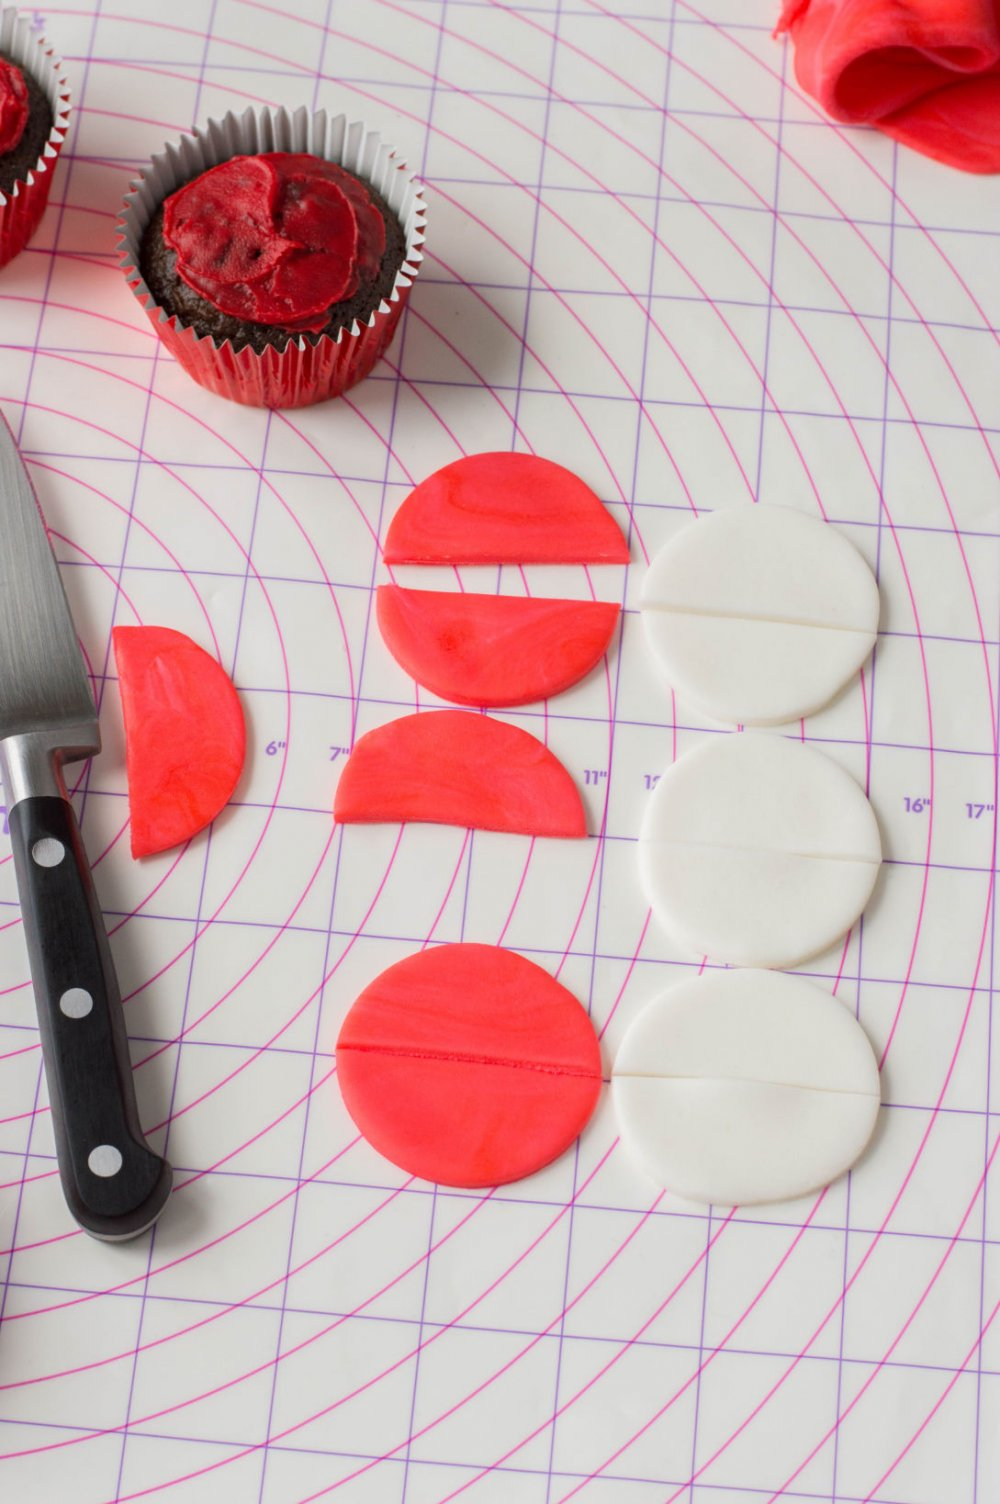 Make 6 red and 6 white fondant circles and cut each in half